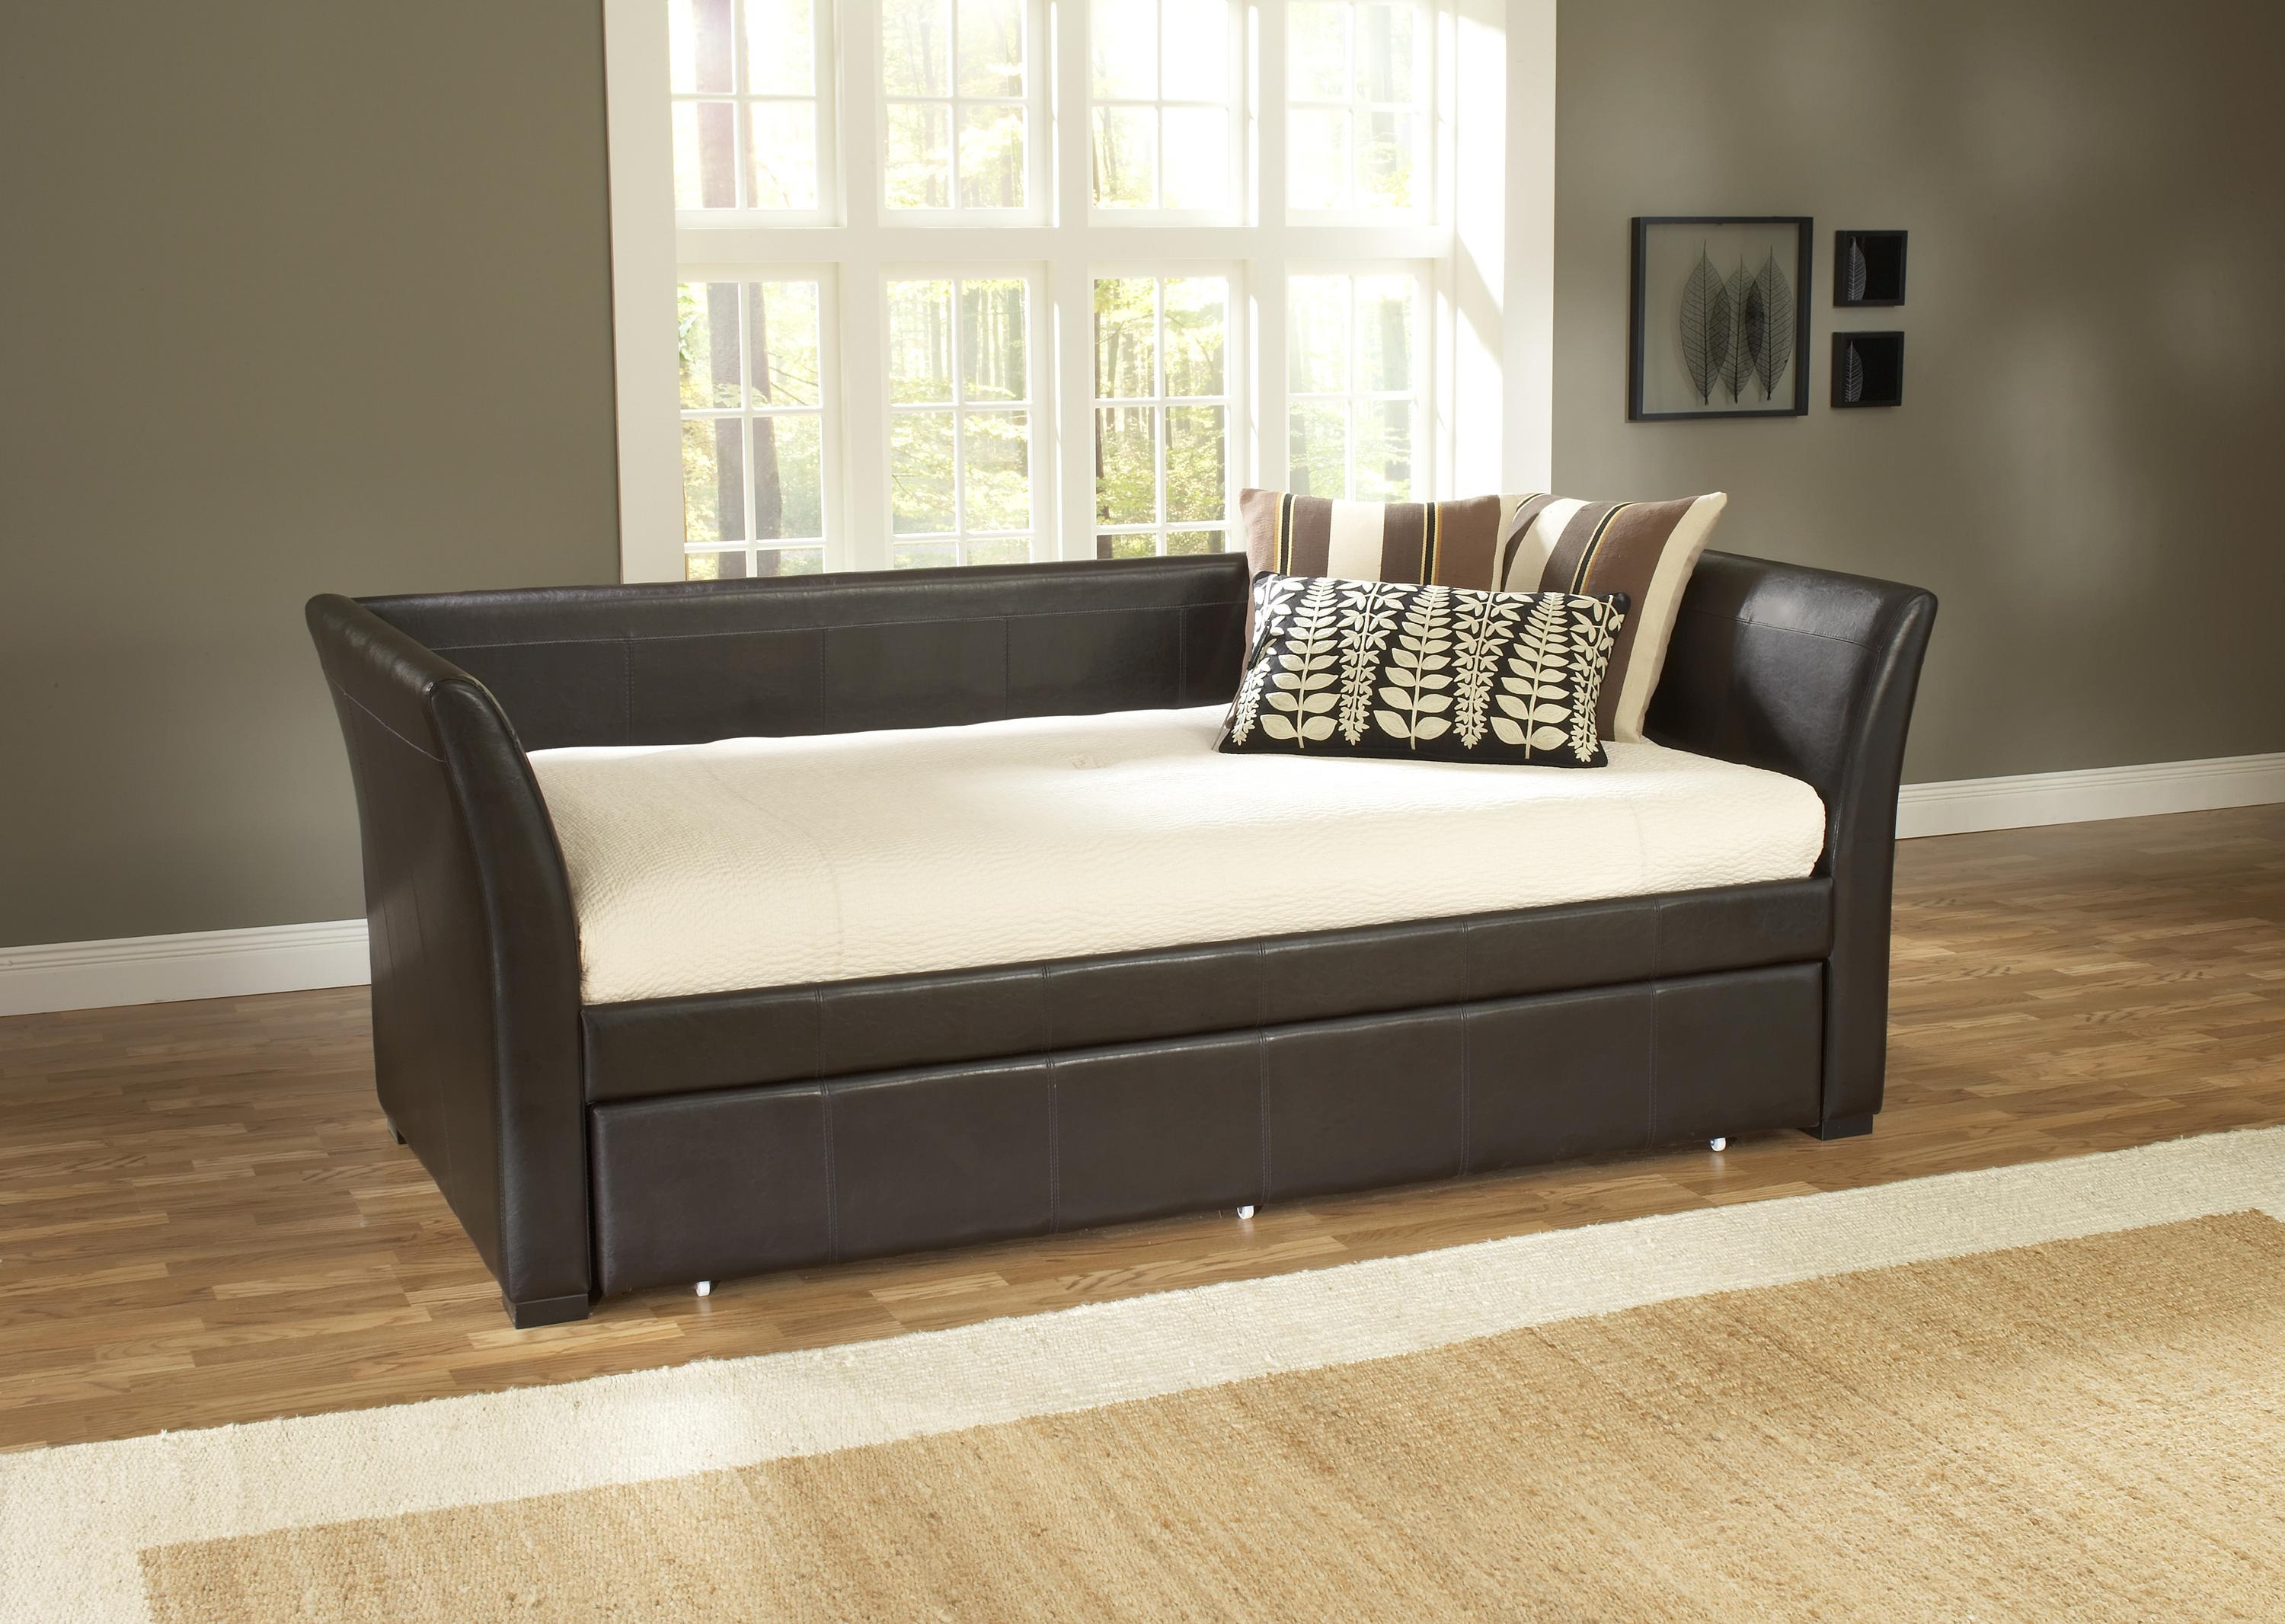 Bedroom: Mesmerizing And Stunning Cheap Daybeds With Trundle For Throughout Sofa Beds With Trundle (Image 4 of 20)